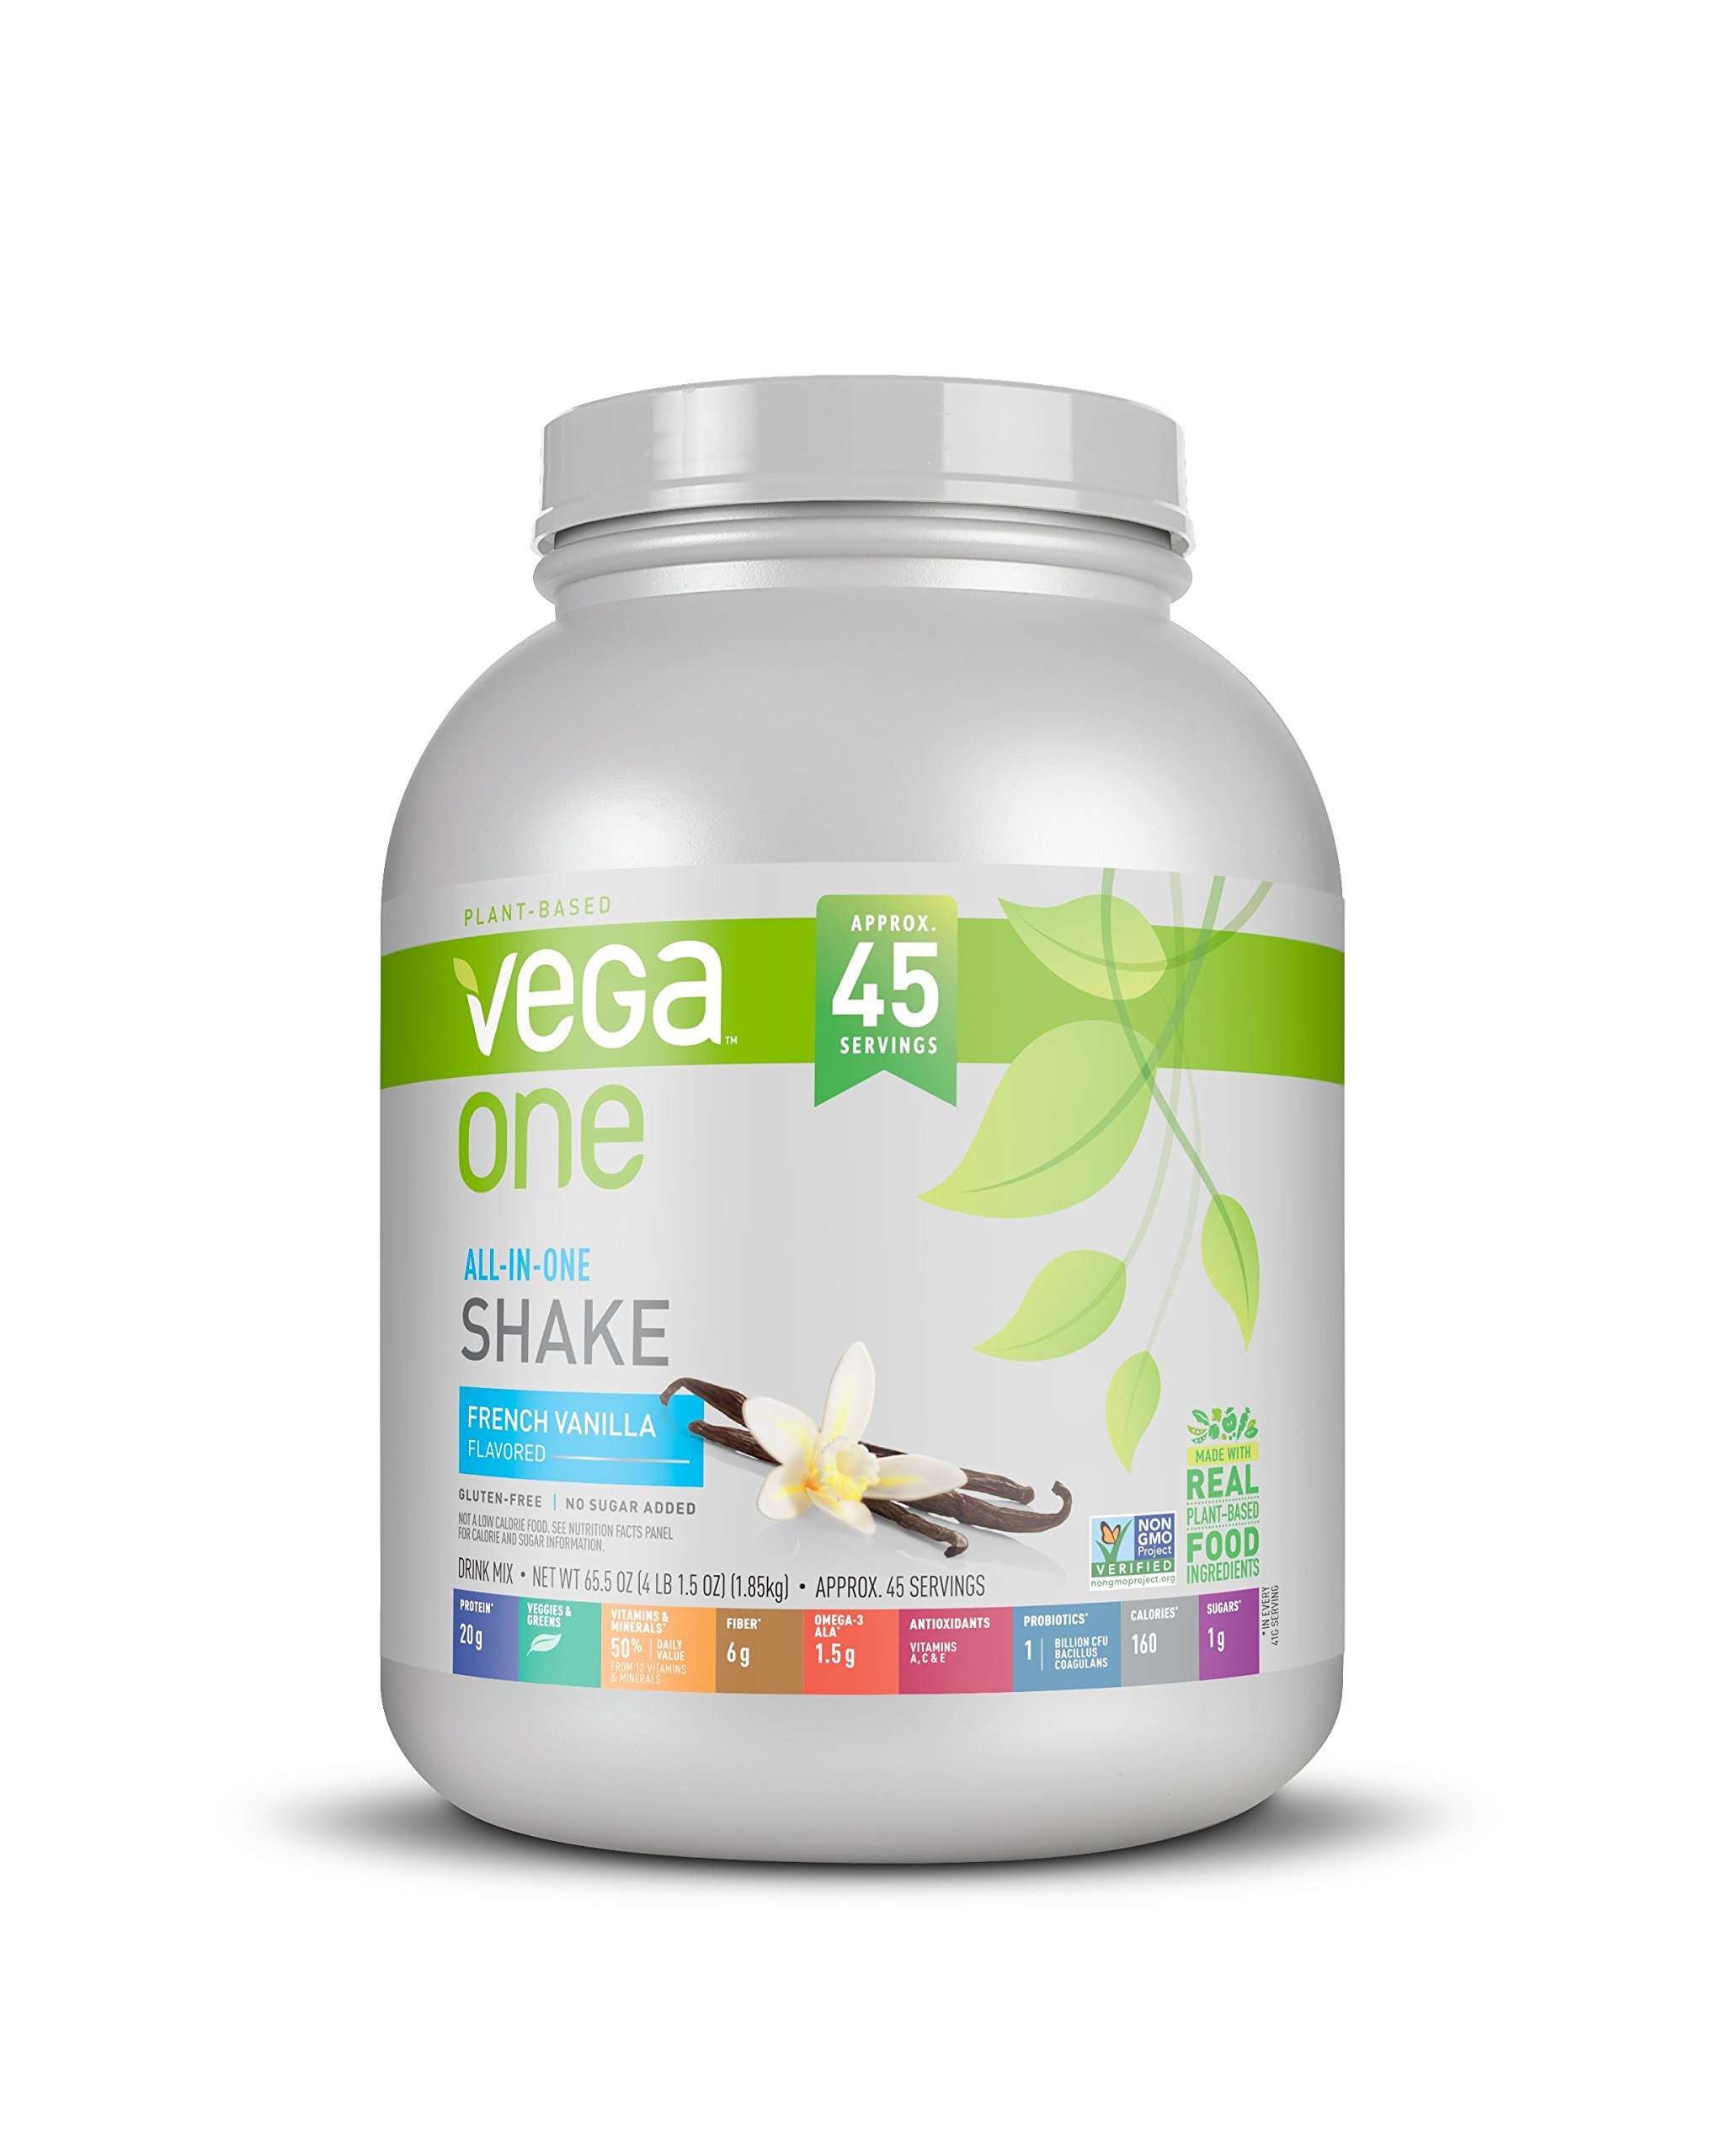 Vega All-In-One Nutritional Shake French Vanilla, XL, (45 Servings, 65.5 Ounce) - Plant Based Vegan Protein Powder, Non Dairy, Gluten Free, Non GMO